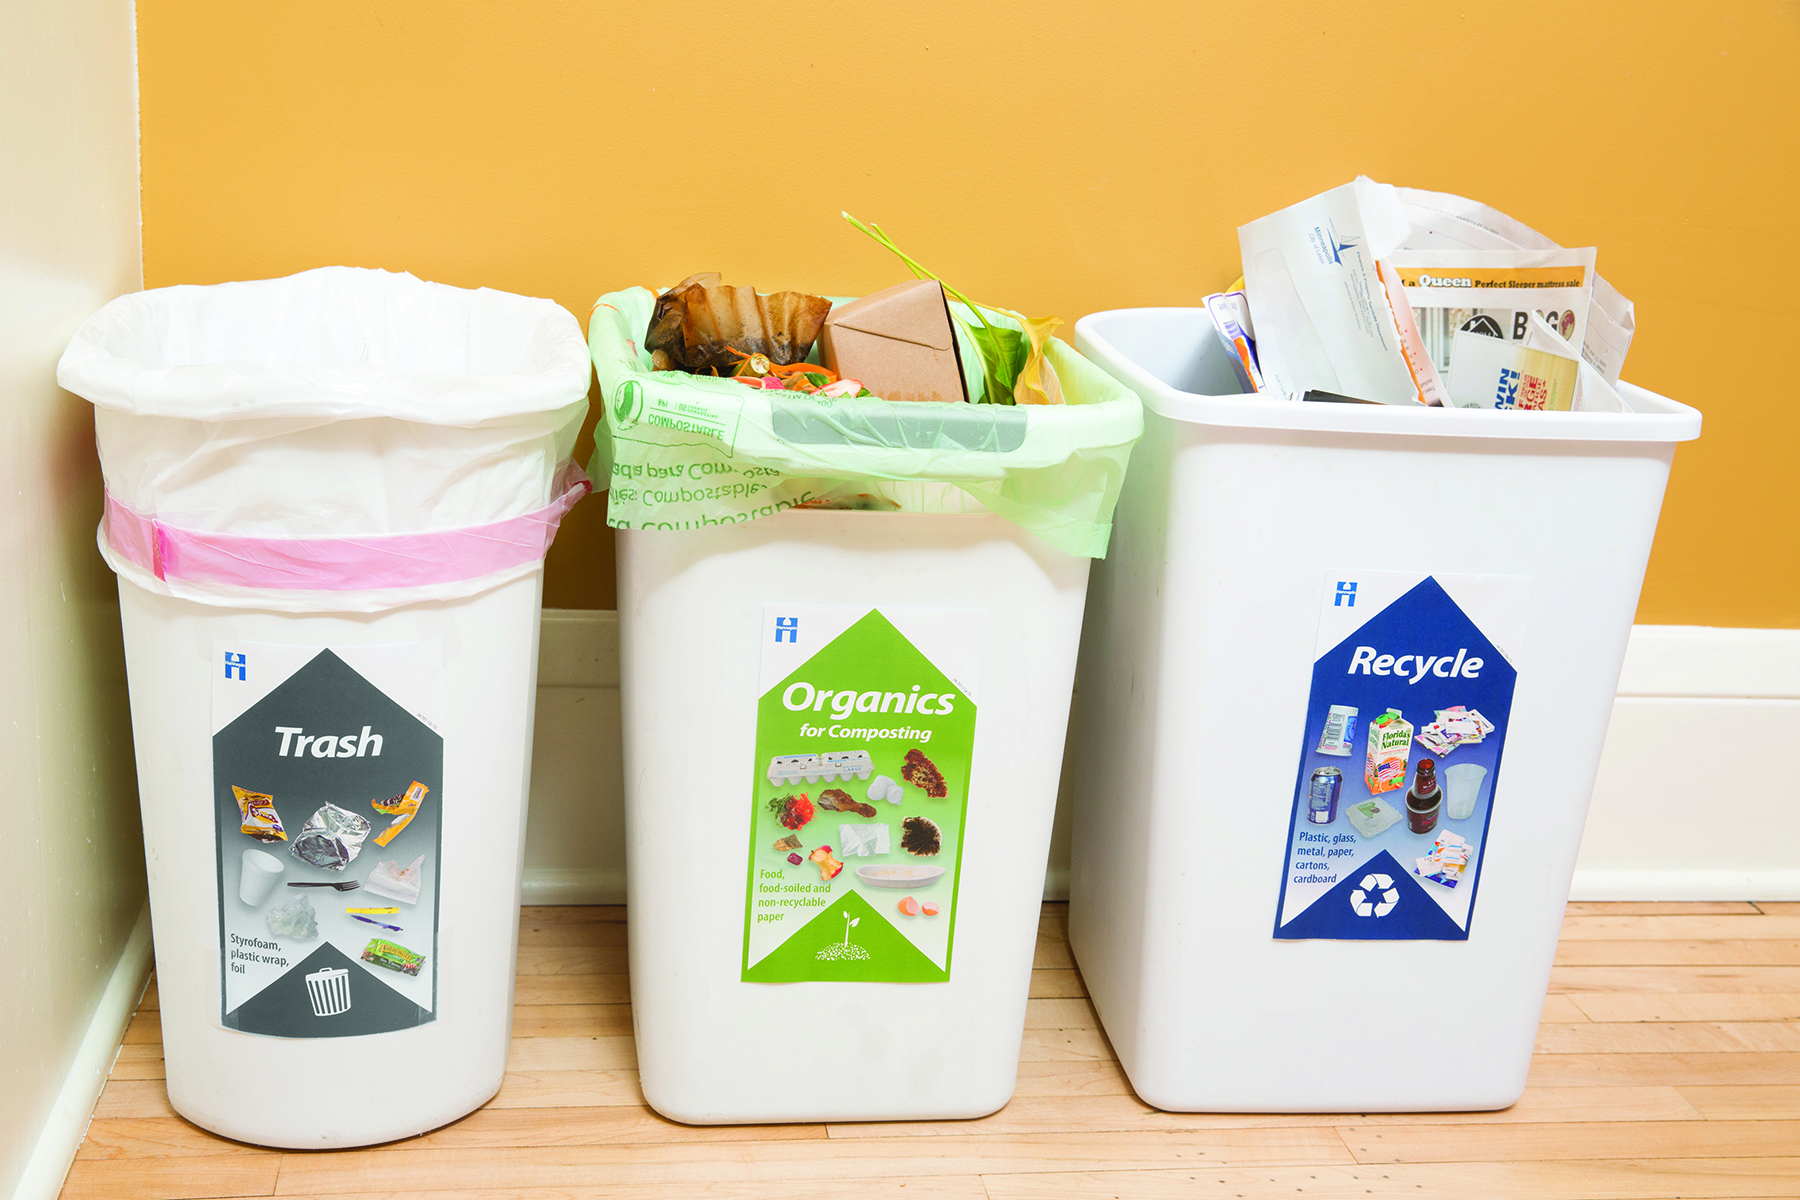 7 Waste Management Tips For City Dwellers